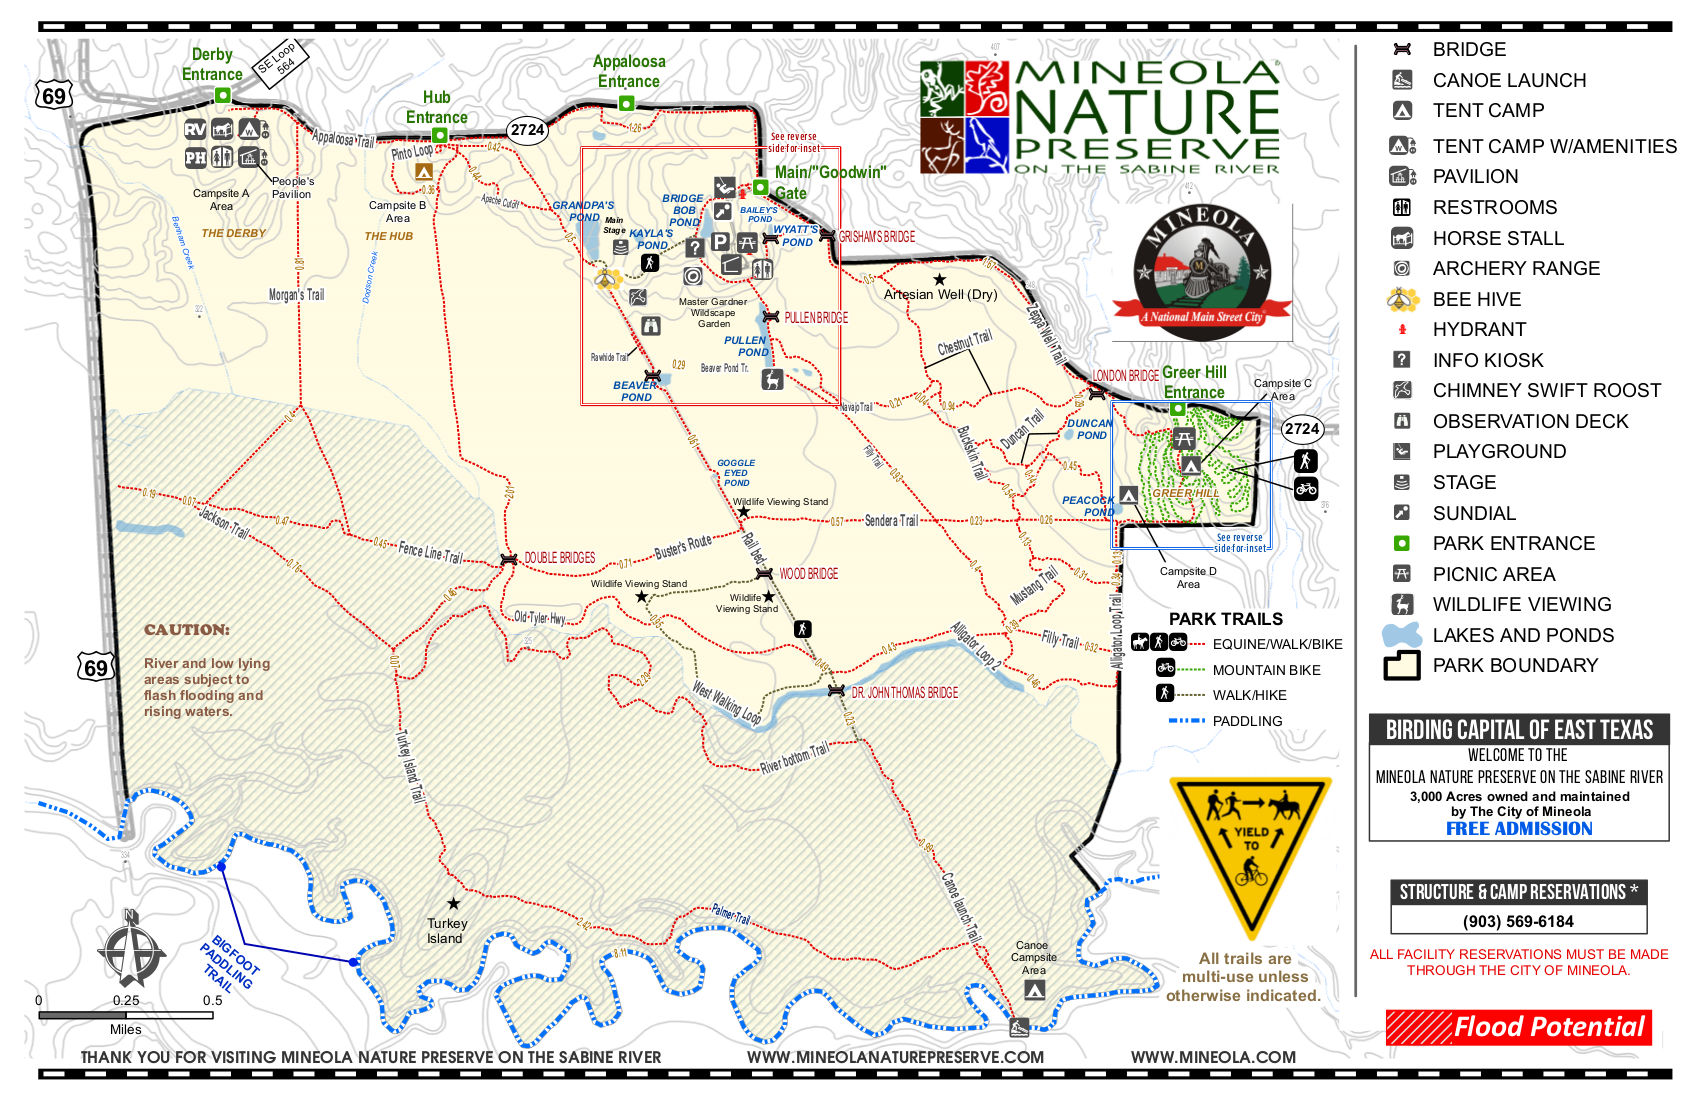 Mineola Nature Preserve Park Map 02282018 etcog page 1